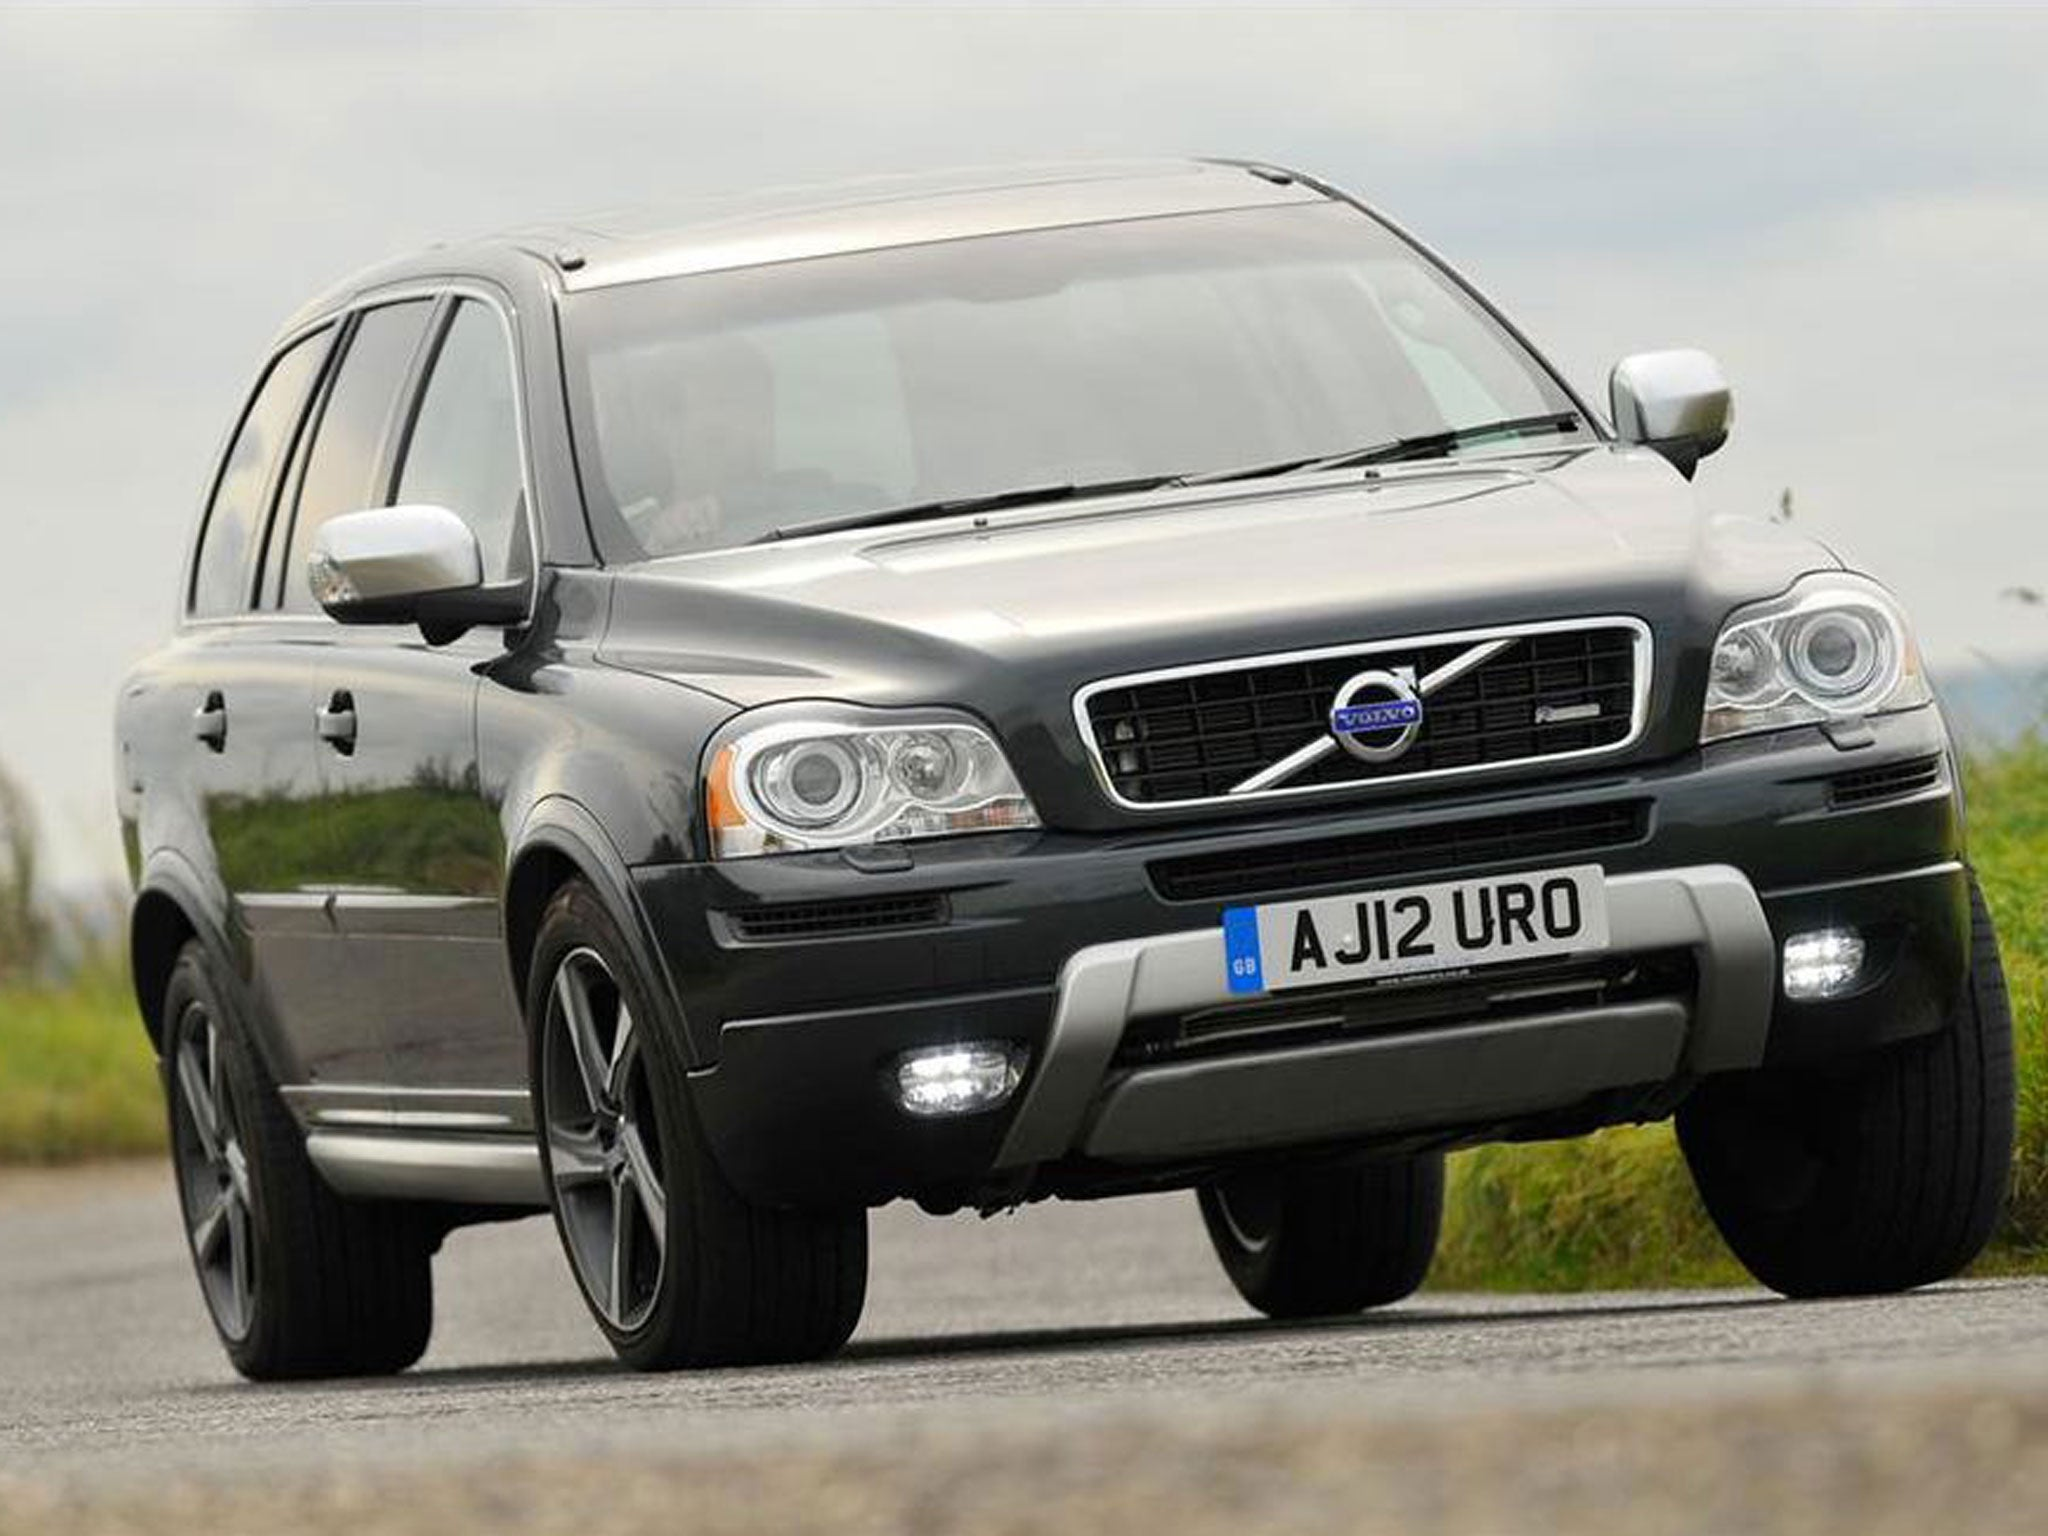 Top 10 used suvs our pick of the best second hand 4x4s the independent